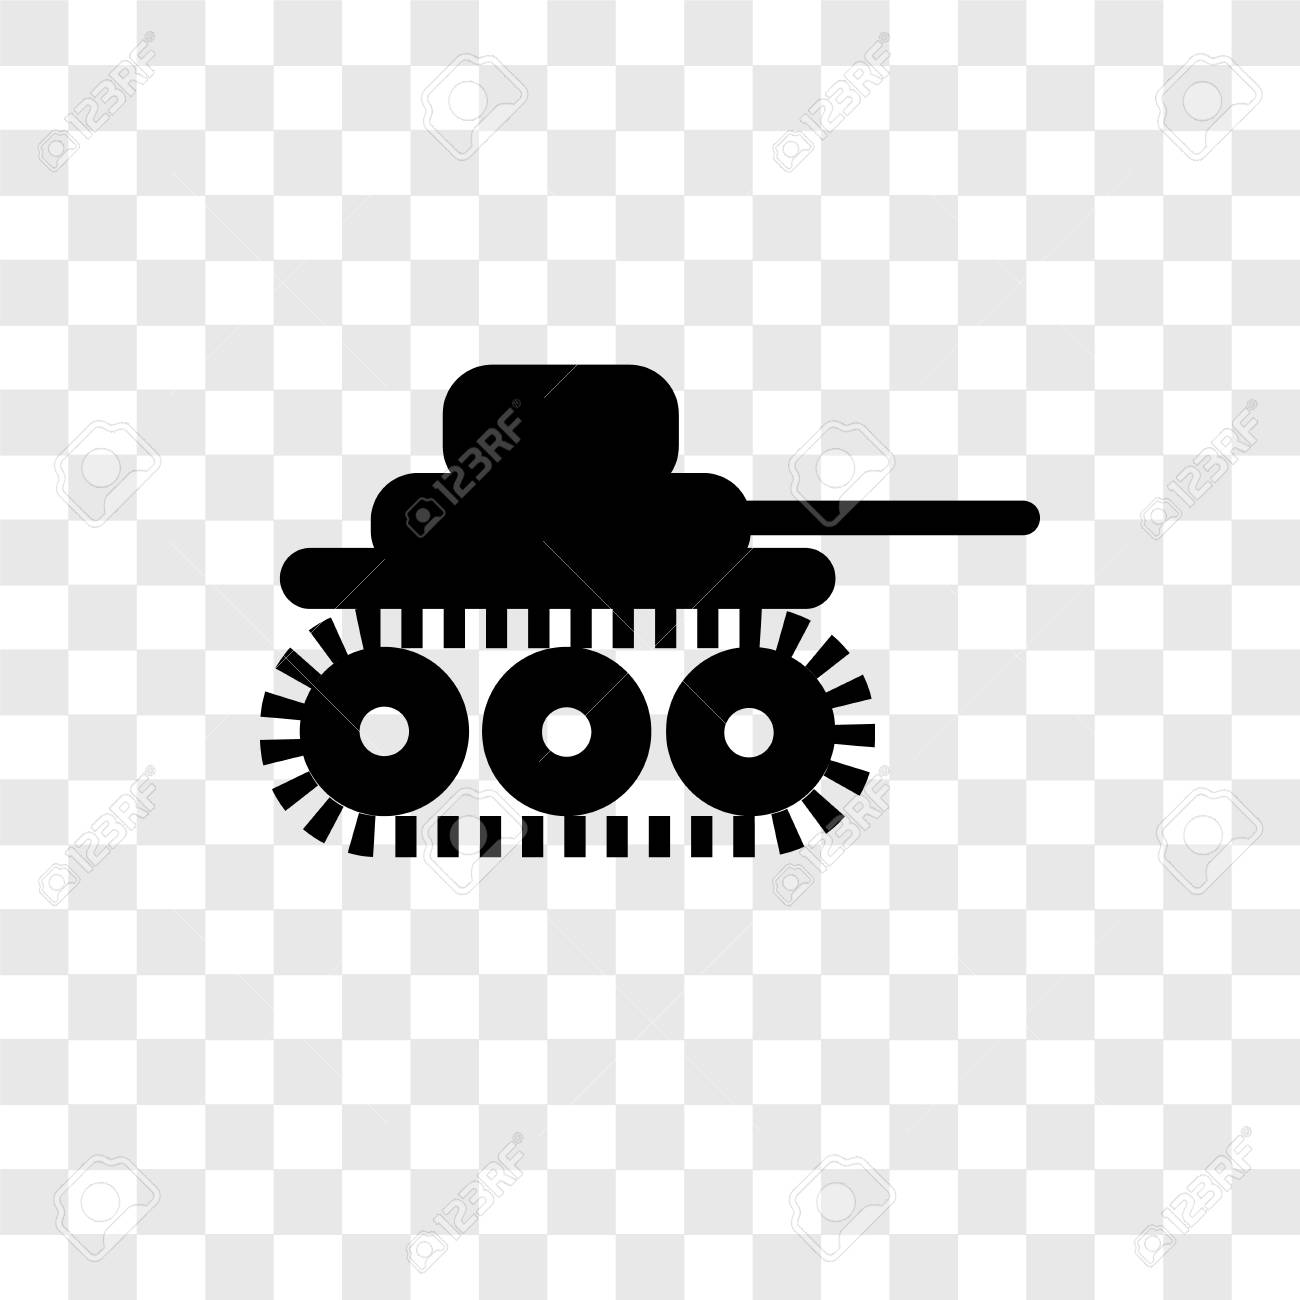 tank vector icon isolated on transparent background tank transparency royalty free cliparts vectors and stock illustration image 112190432 tank vector icon isolated on transparent background tank transparency